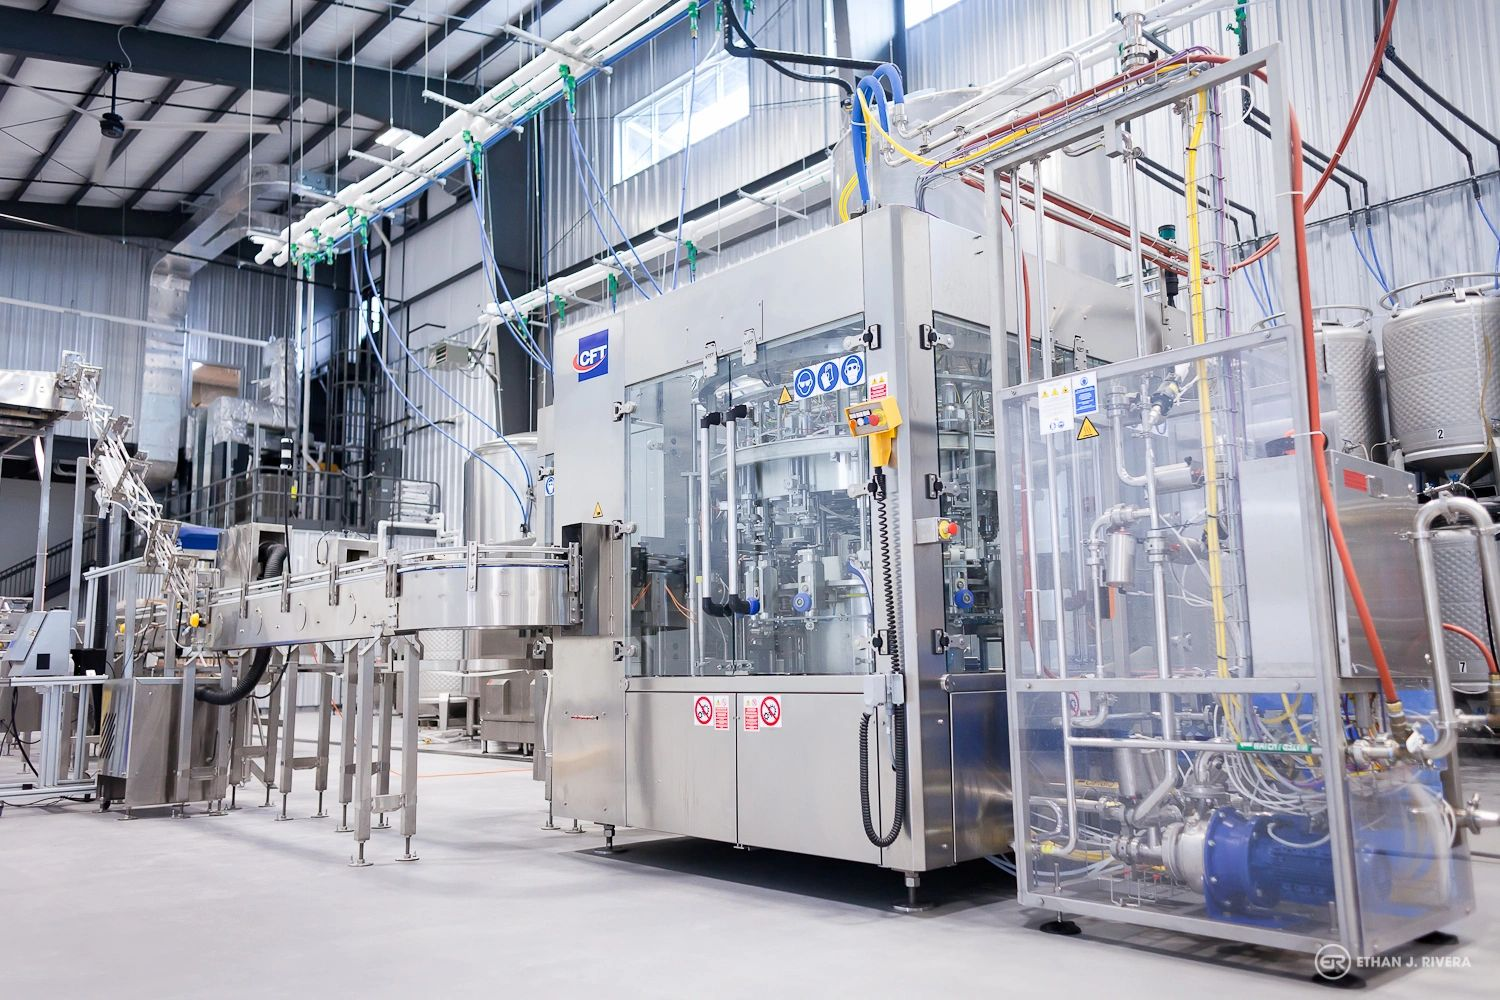 Image of DESTIHL Brewery's CFT canning line and production brewery in Normal, Illinois.